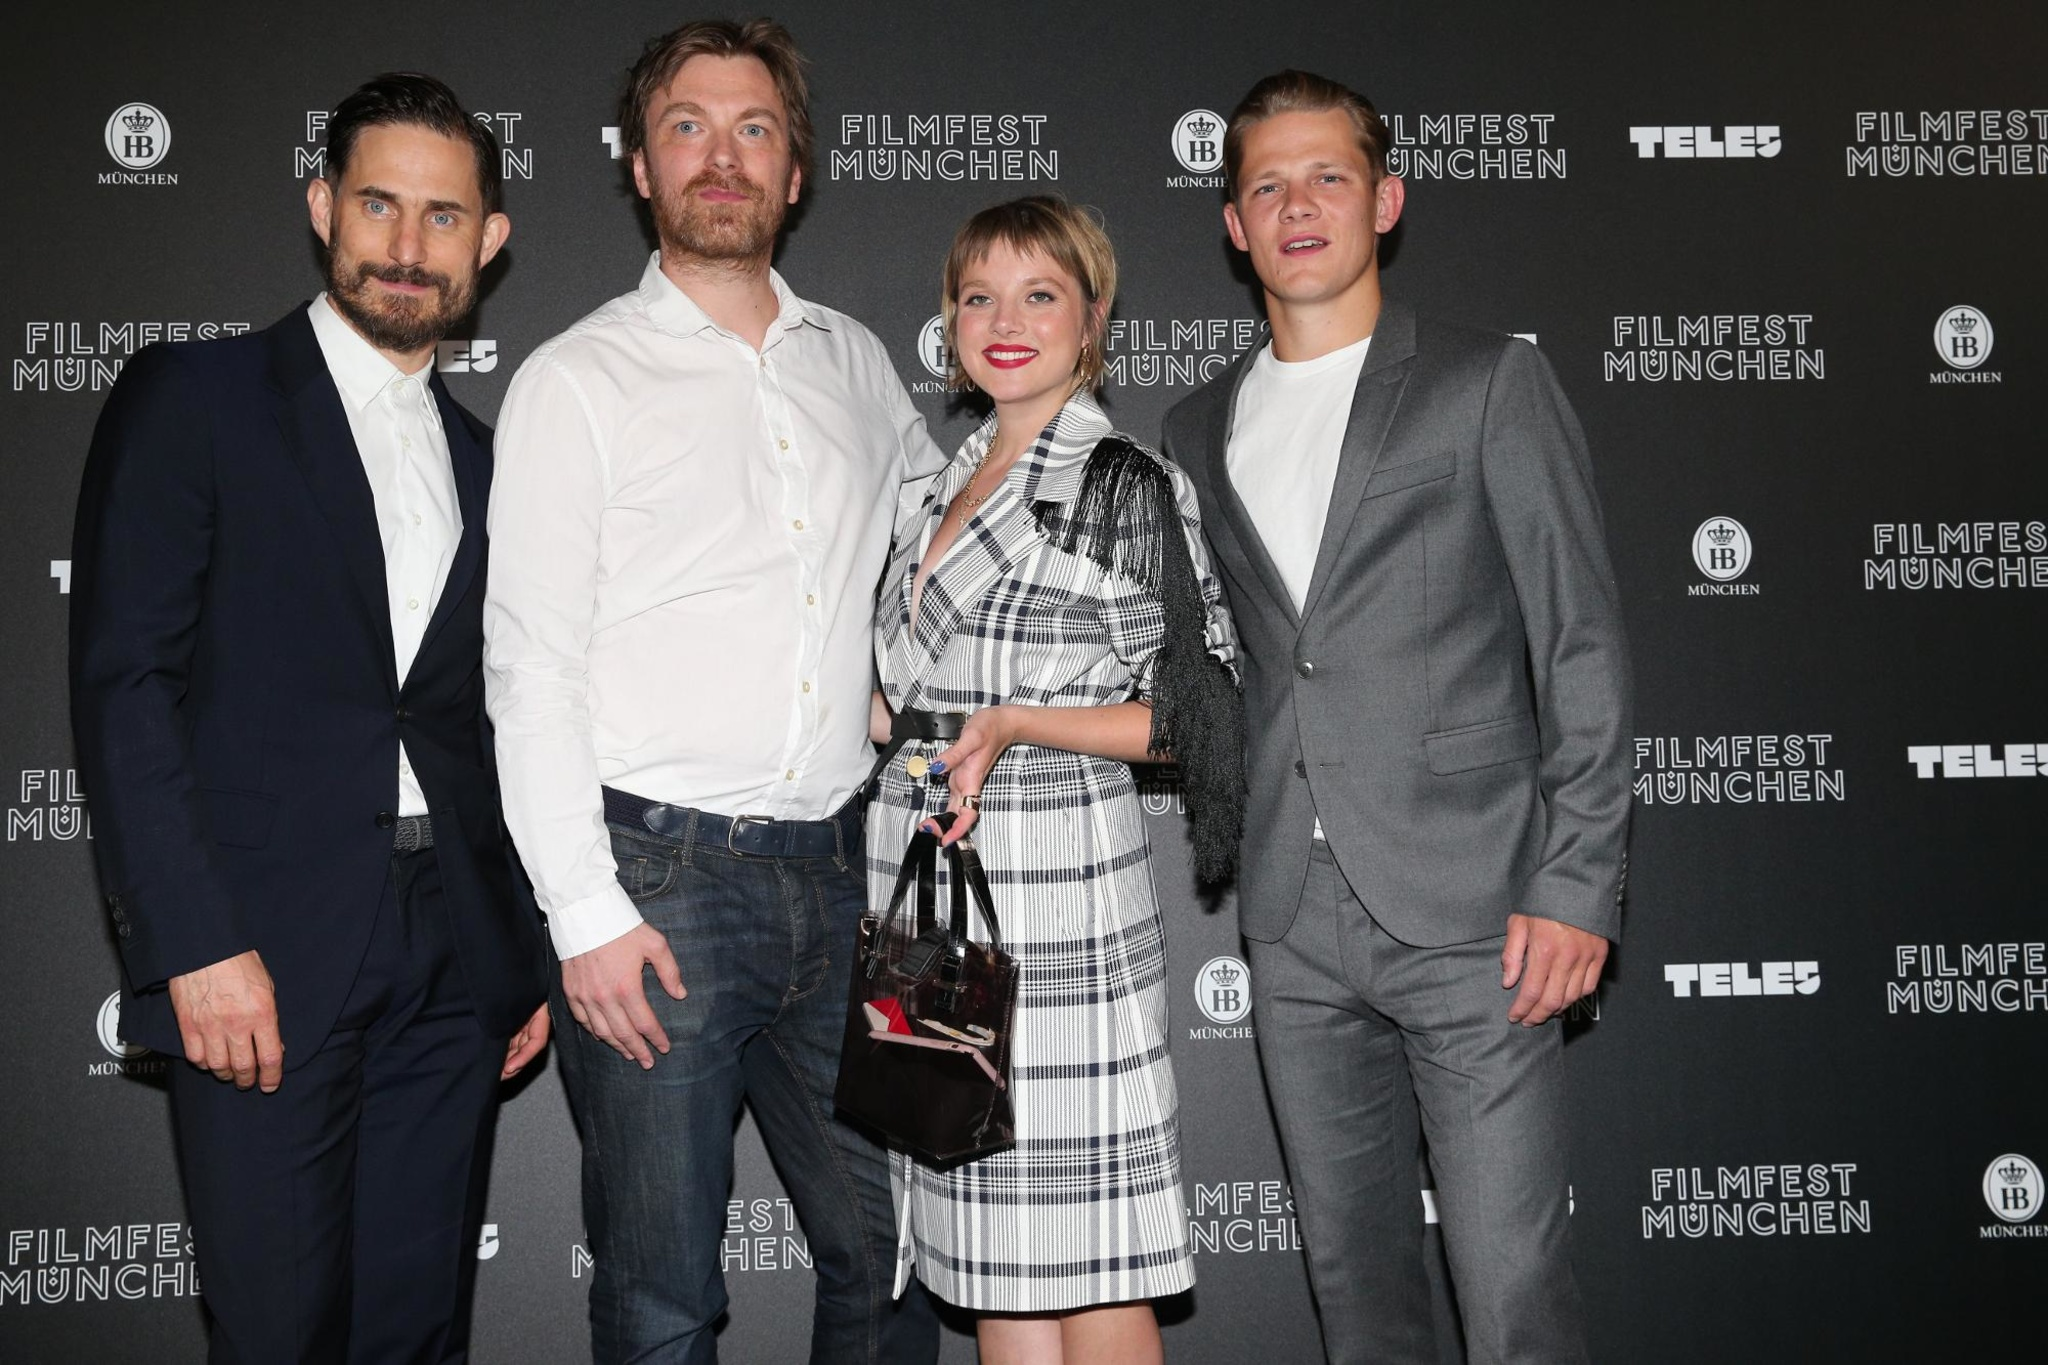 Clemens with cast and the director at the Munich Film Festival premiere